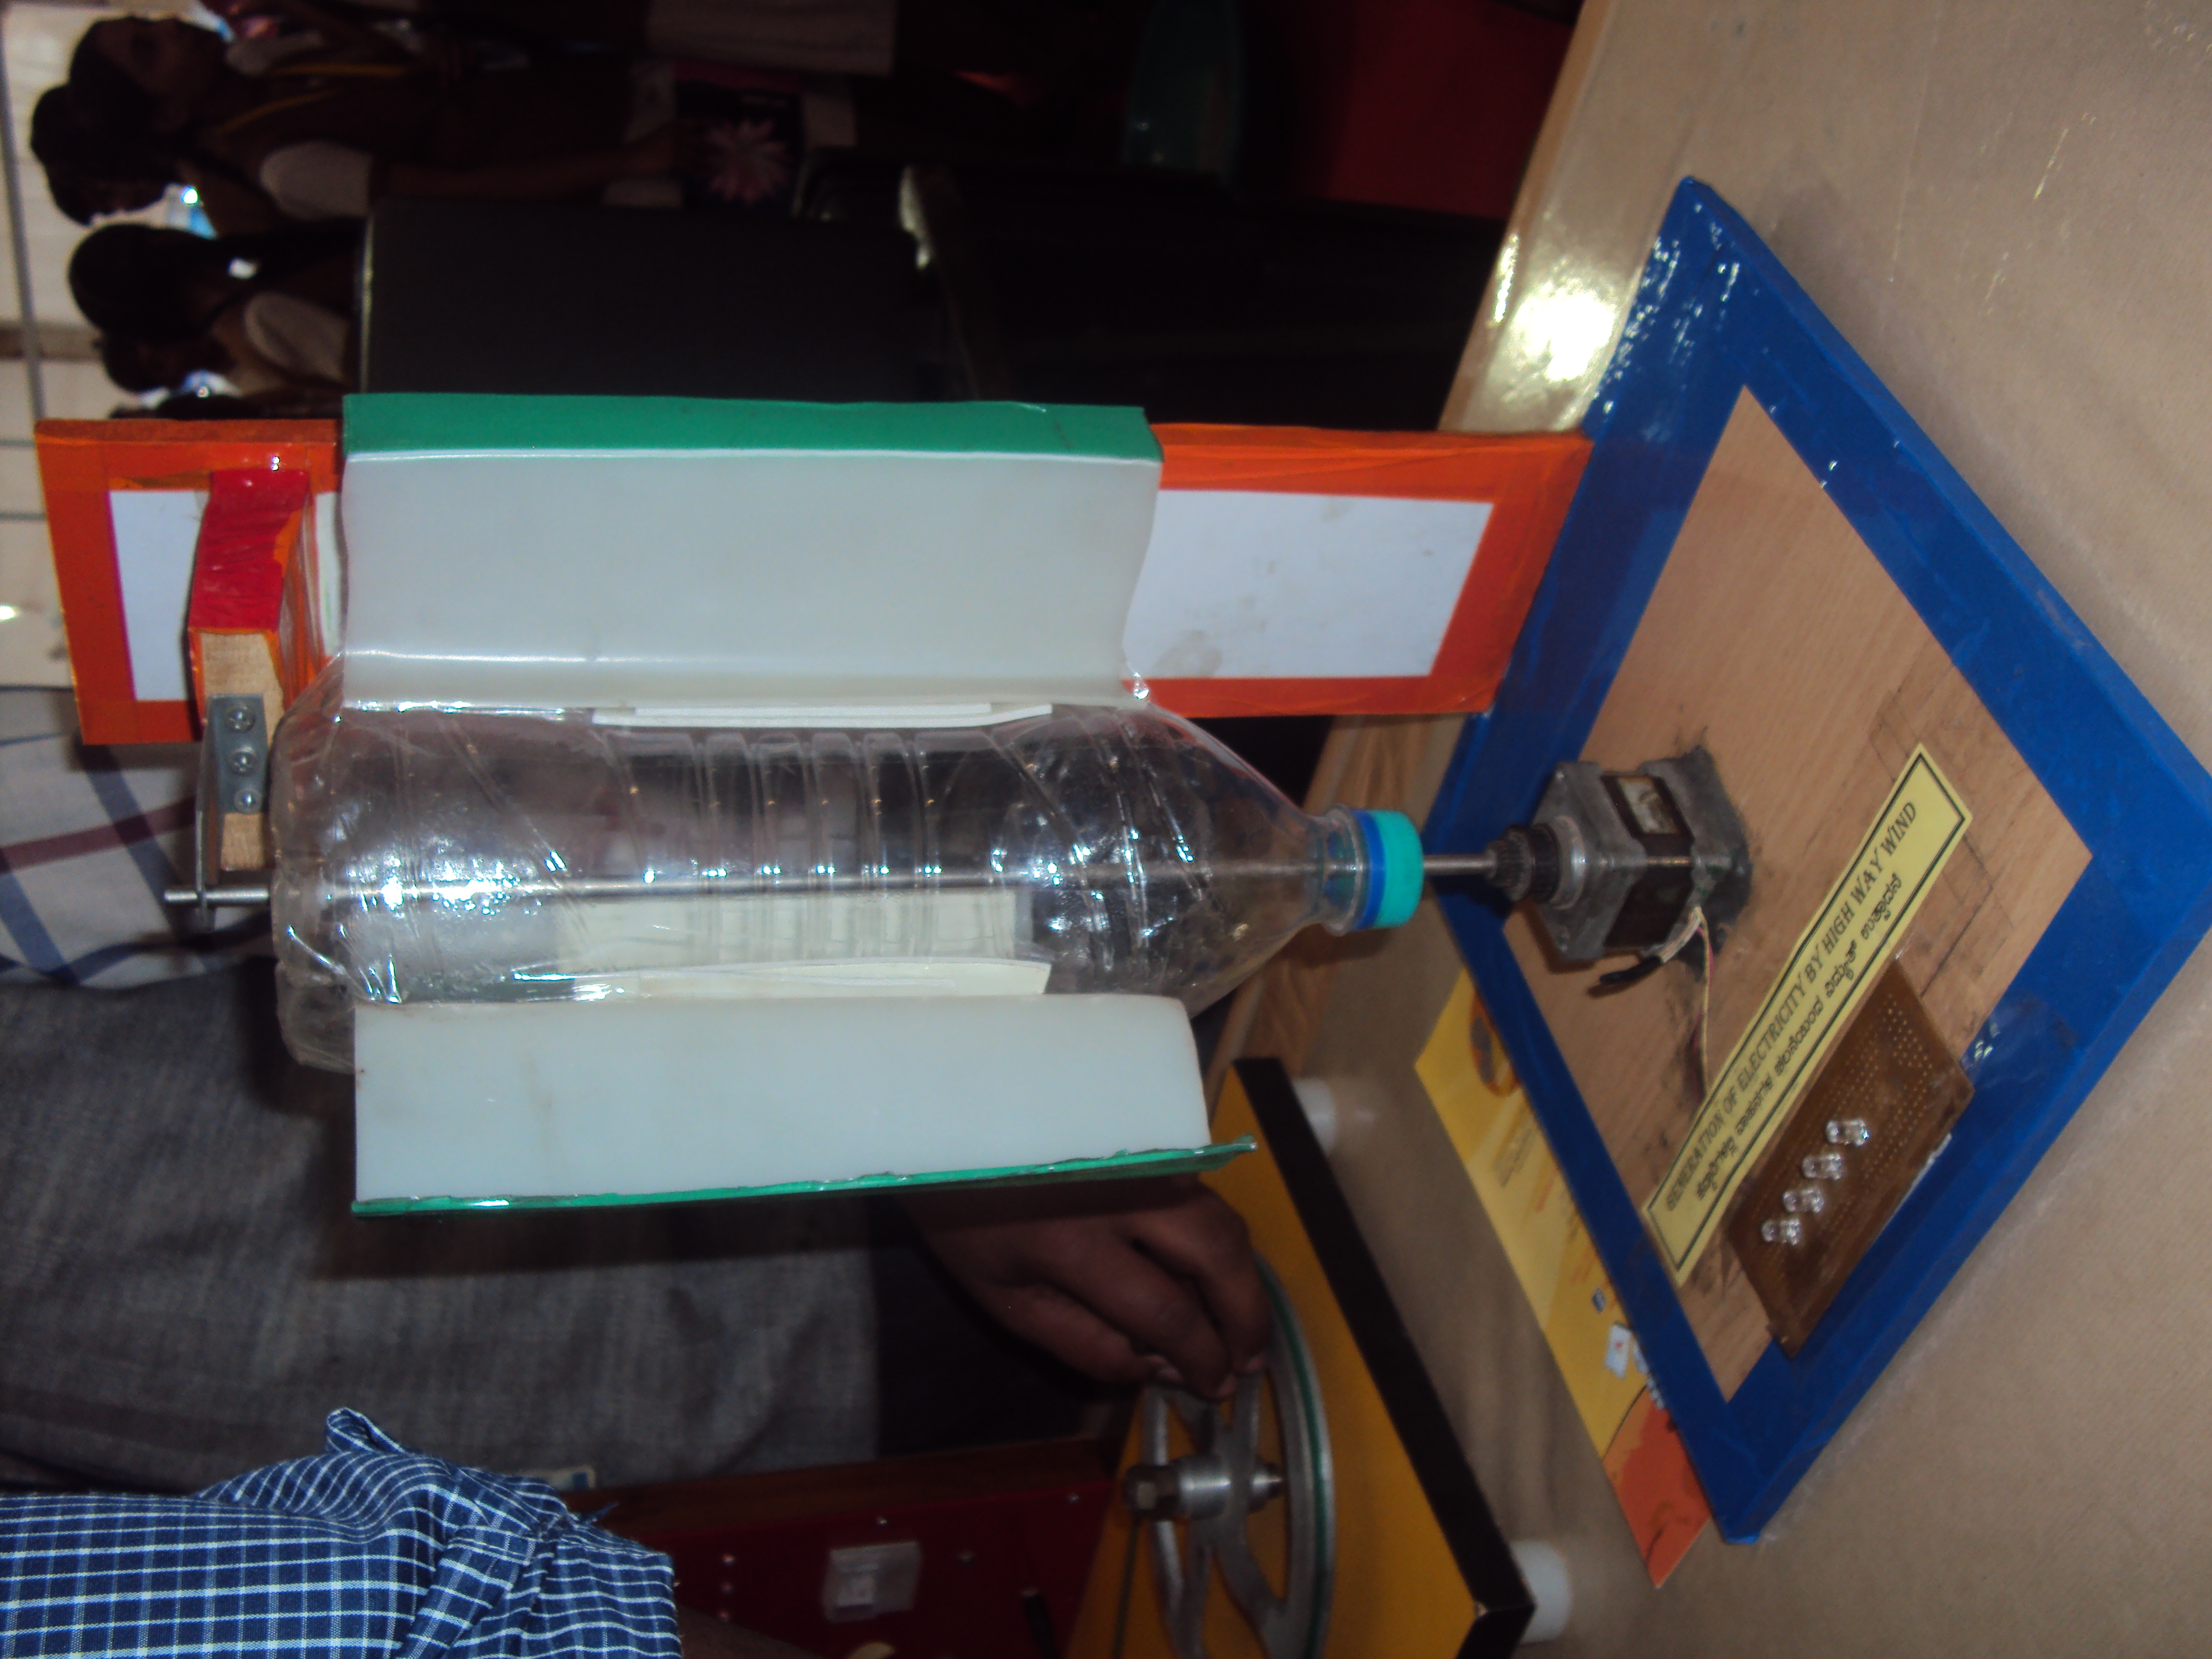 In this electricity generator, wind rotates the poles (bottle), generating mechanical energy that can be converted to electrical energy. This electrical energy is responsible for the lighting of the bulb.